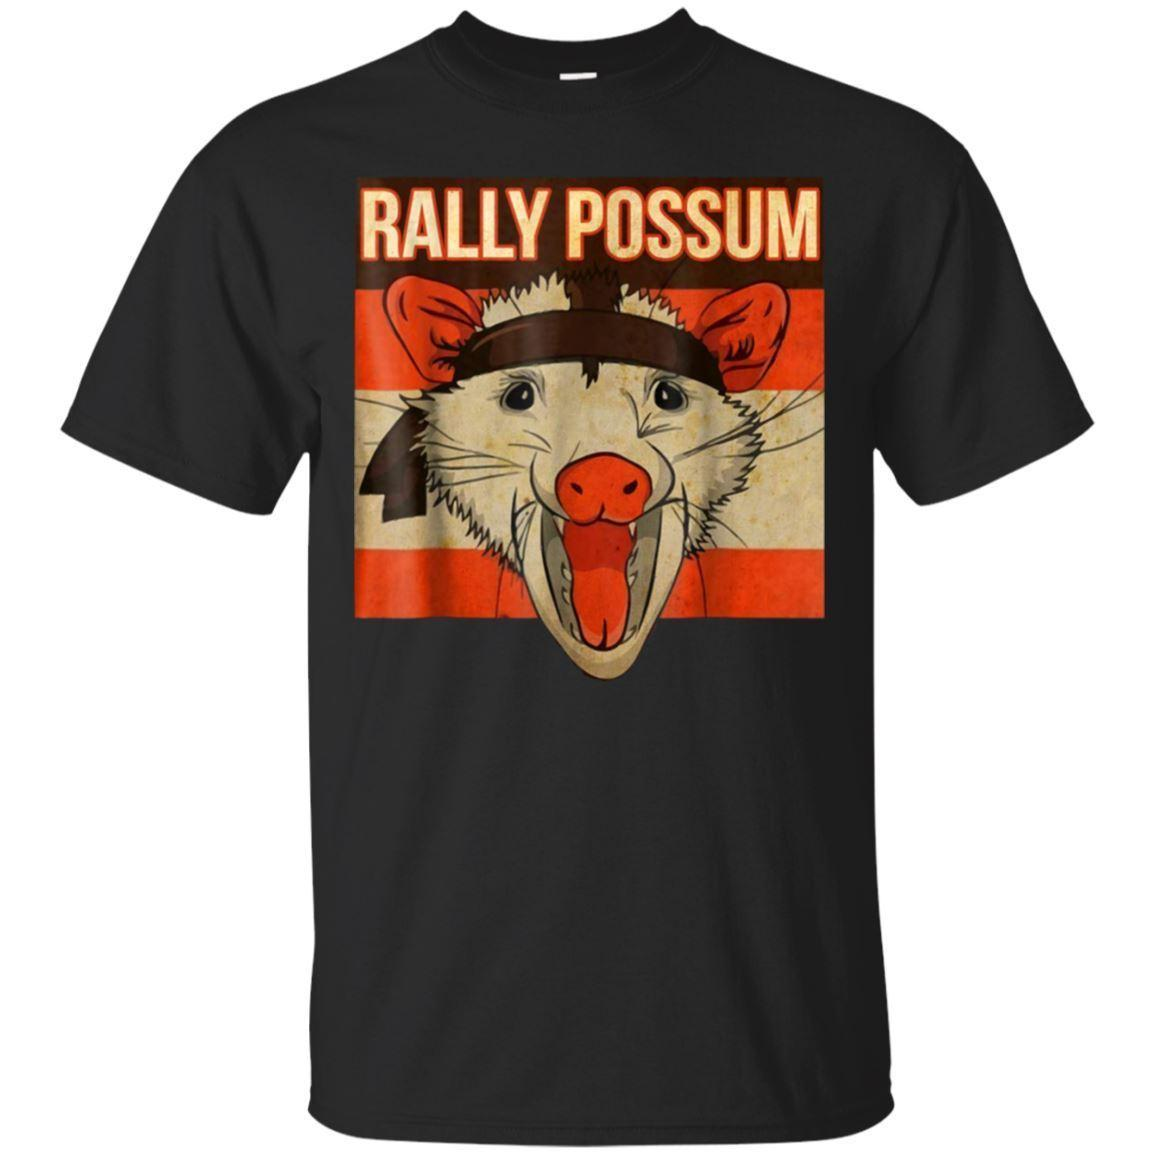 Rally Possum - Funny Short Sleeve Black T-Shirt Size Cartoon t shirt men Unisex New Fashion tshirt free shipping funny tops